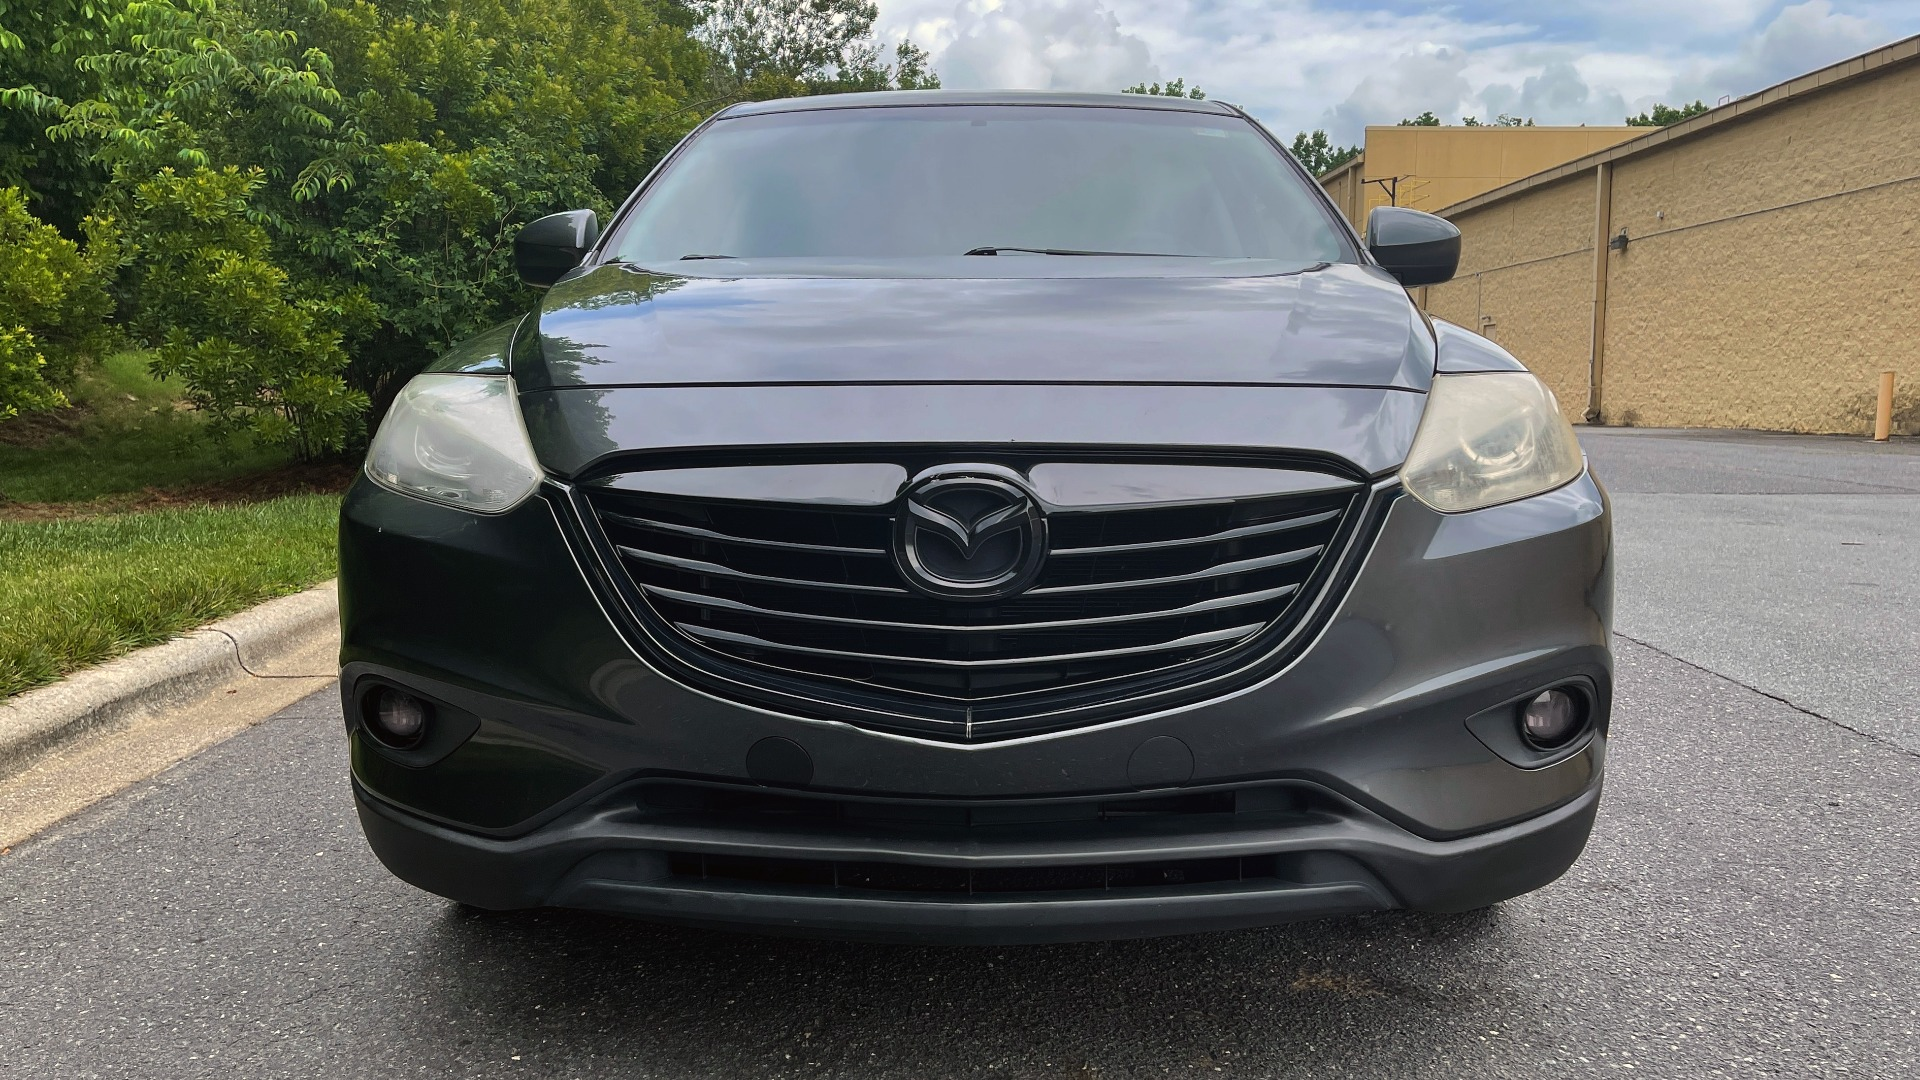 Used 2014 Mazda CX-9 TOURUNG / FWD / 3.7L V6 / 6-SPD AUTO / HTD STS / 3-ROW / REARVIEW for sale $14,995 at Formula Imports in Charlotte NC 28227 11